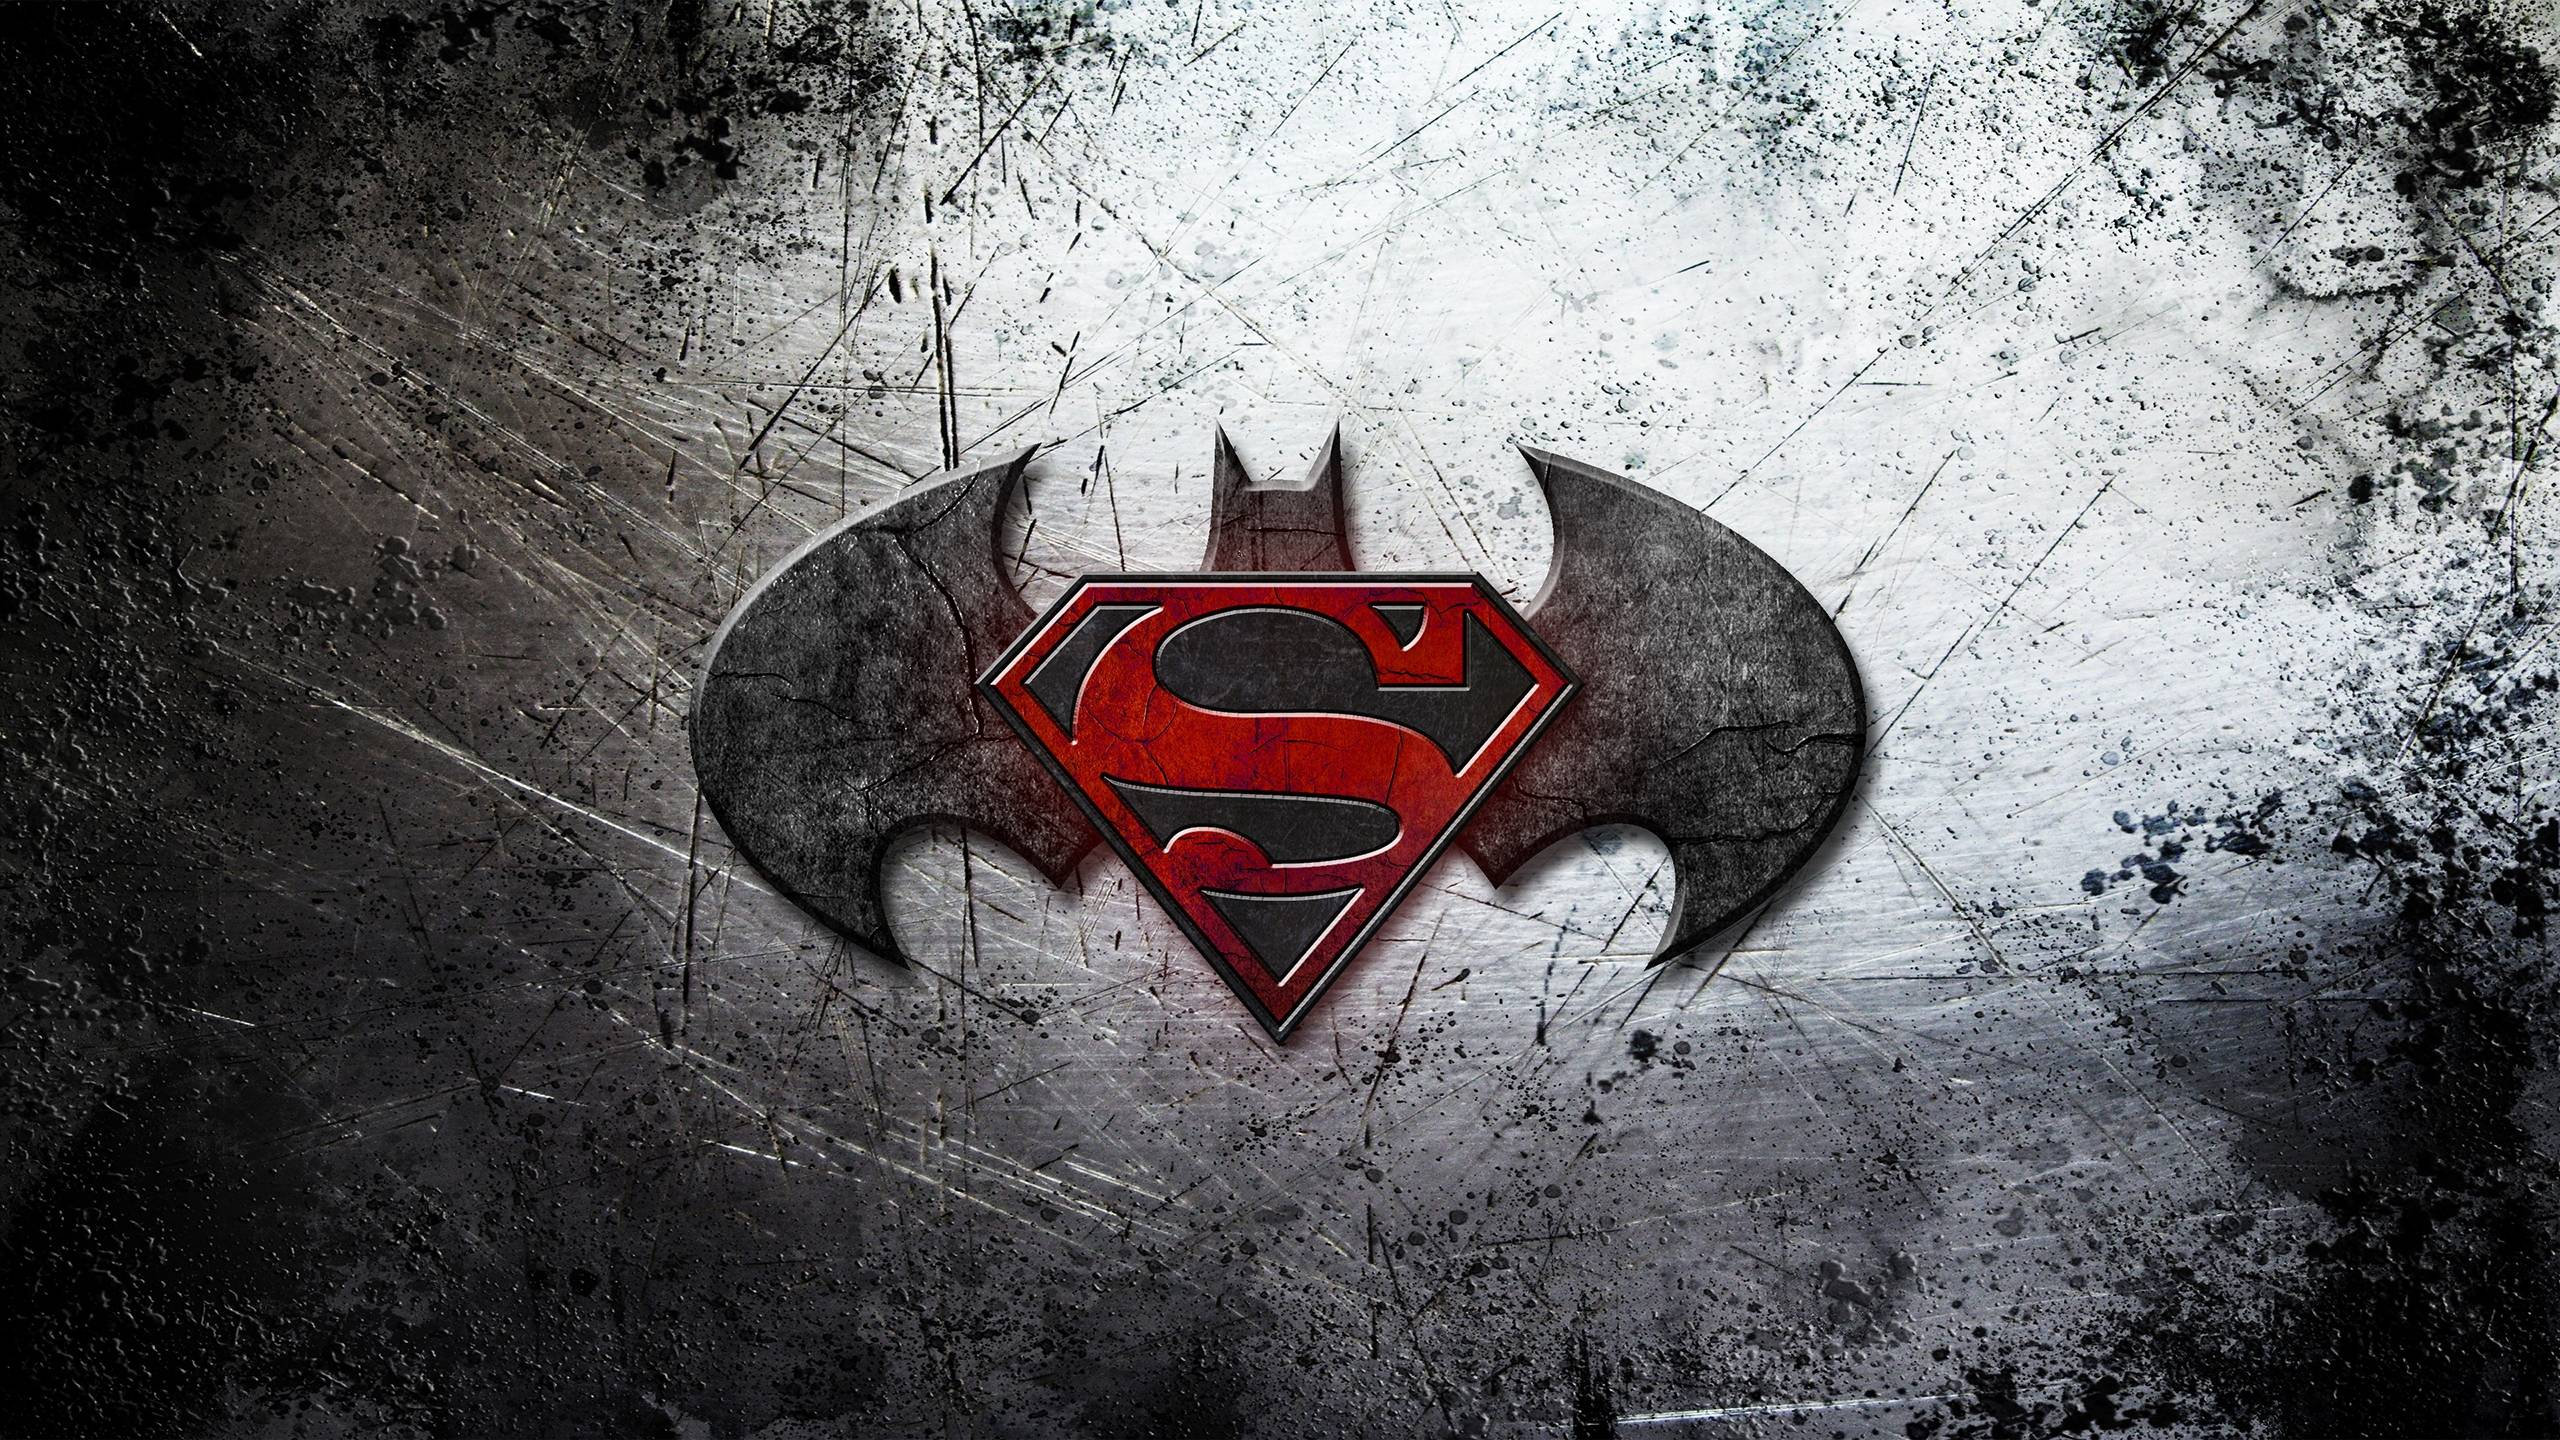 Batman And Superman Dawn Of Justice Backgrounds HD | Wallpapers ...